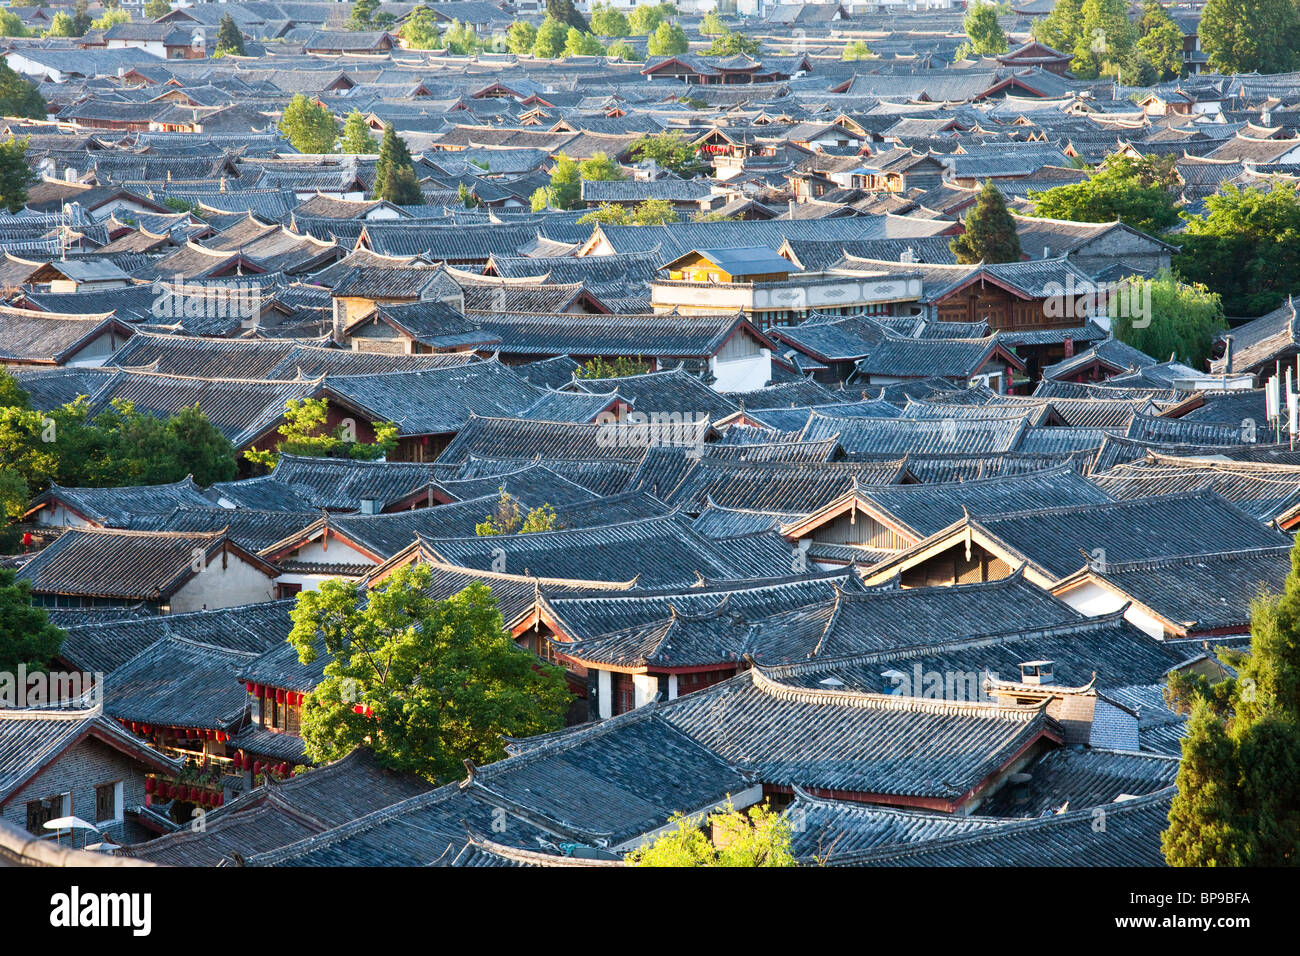 Rooftop view of the old town in Lijiang, Yunnan Province, China Stock Photo